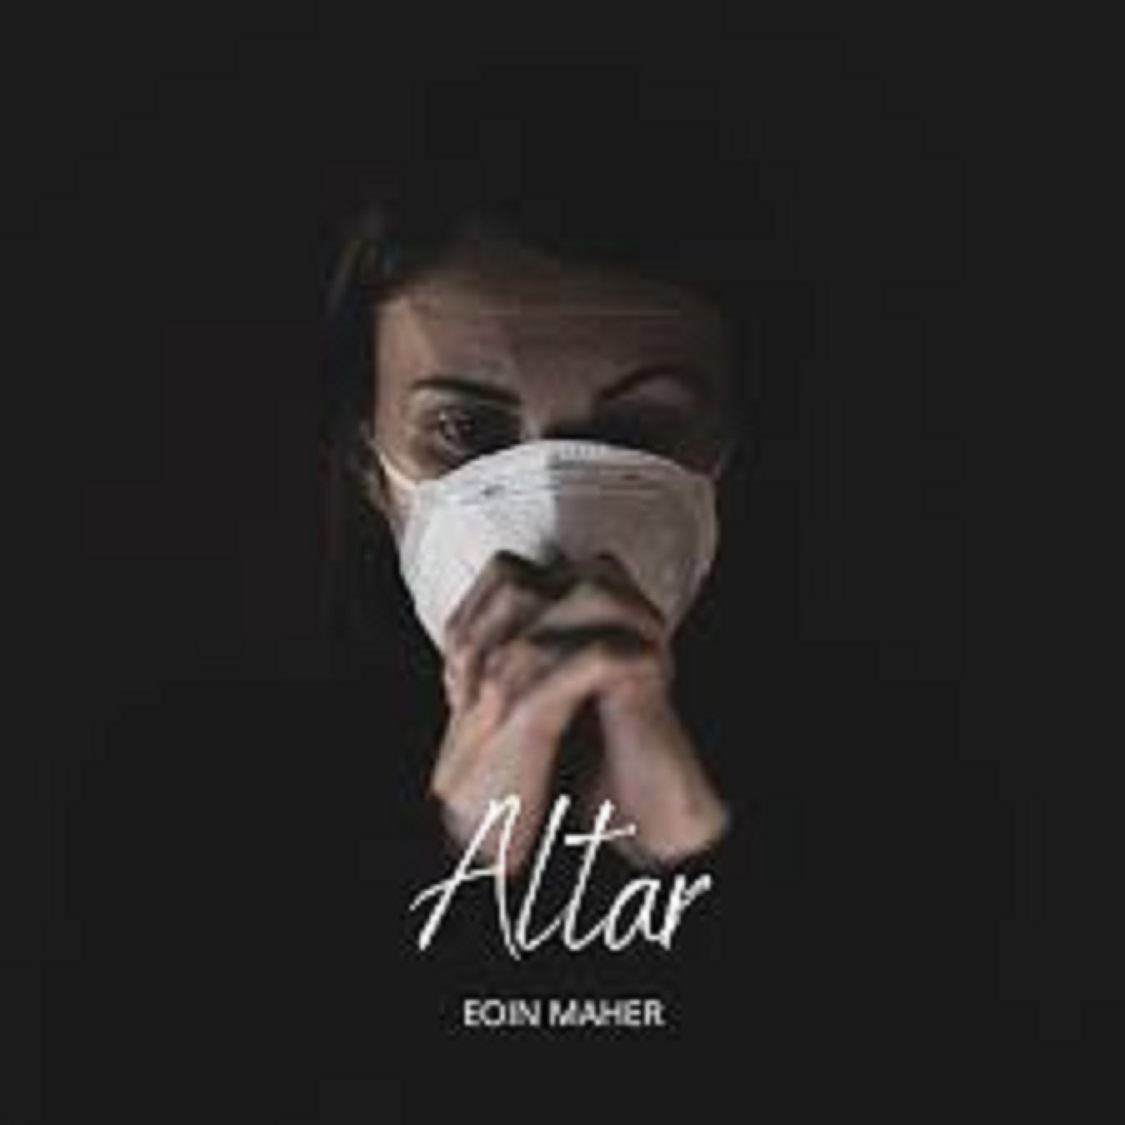 """Read more about the article Eoin Maher's """"Alter"""" Is Inspired By the Adverse Effects of THIS Major Current Event"""